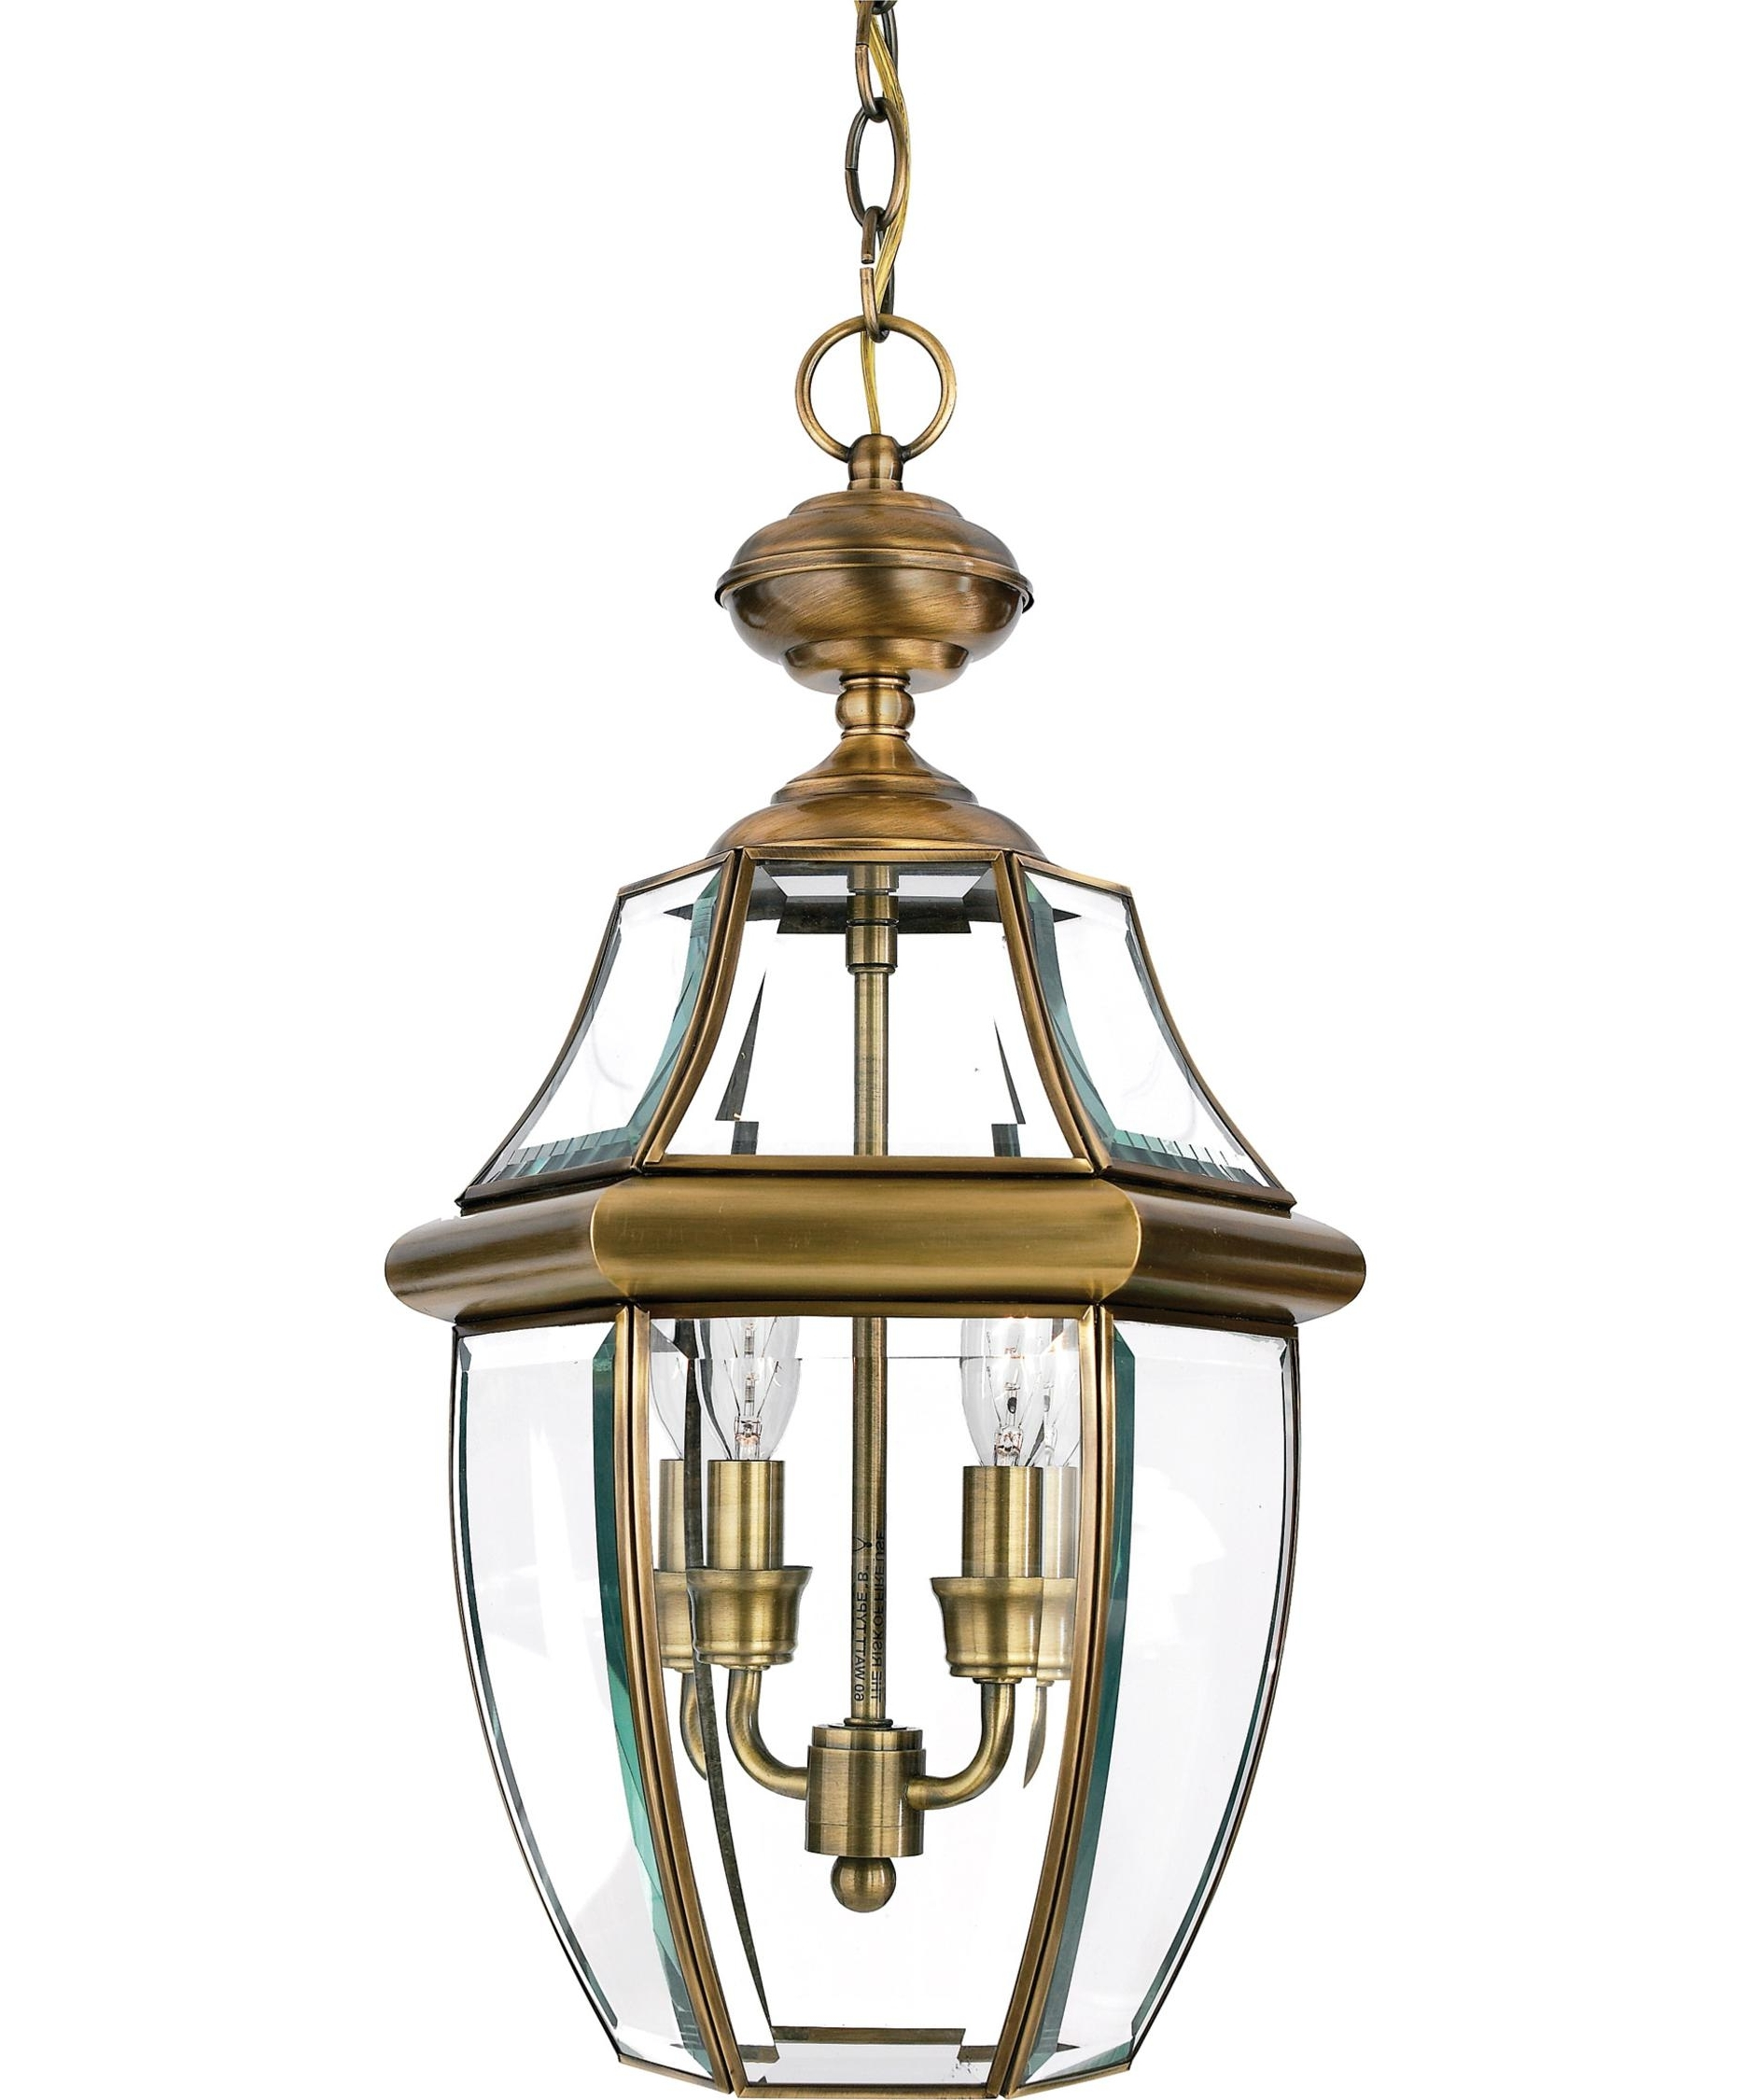 Outdoor Hanging Lights For Well Known Quoizel Ny1178 Newbury 10 Inch Wide 2 Light Outdoor Hanging Lantern (View 11 of 20)